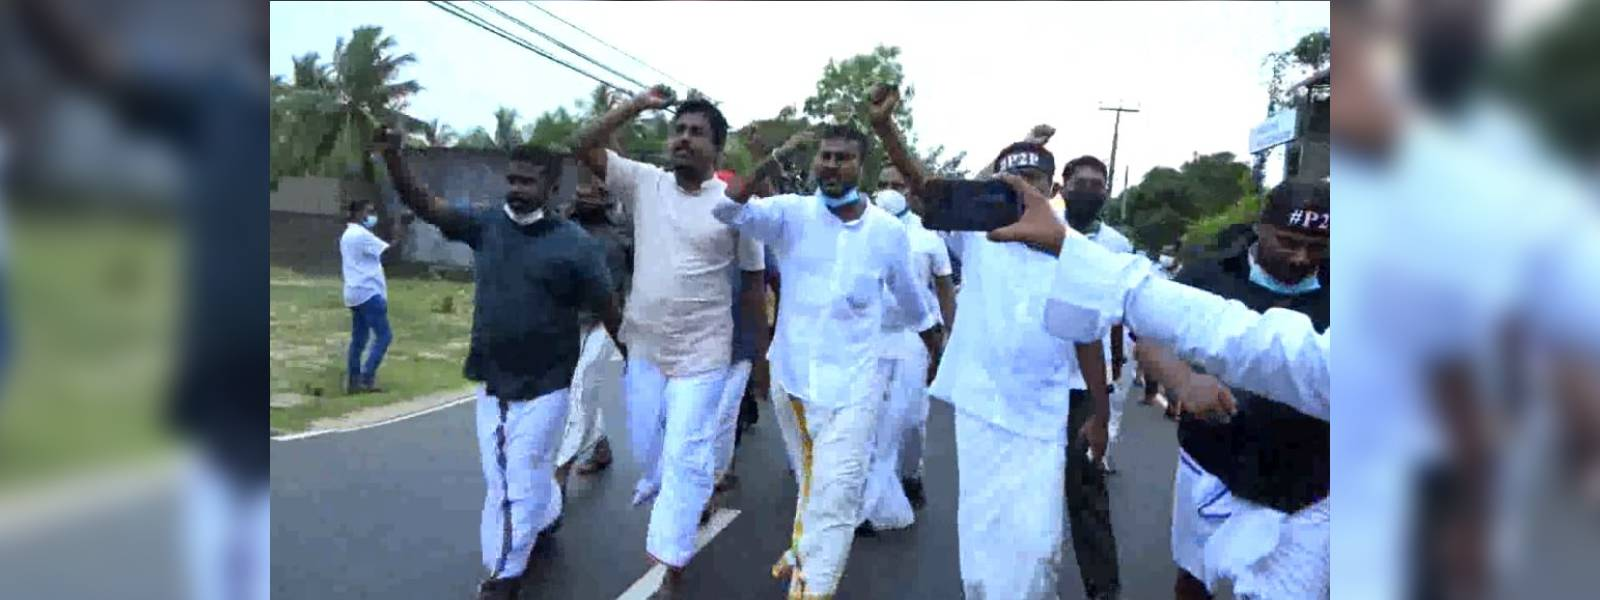 Protest seeking to resolve issues of Tamils